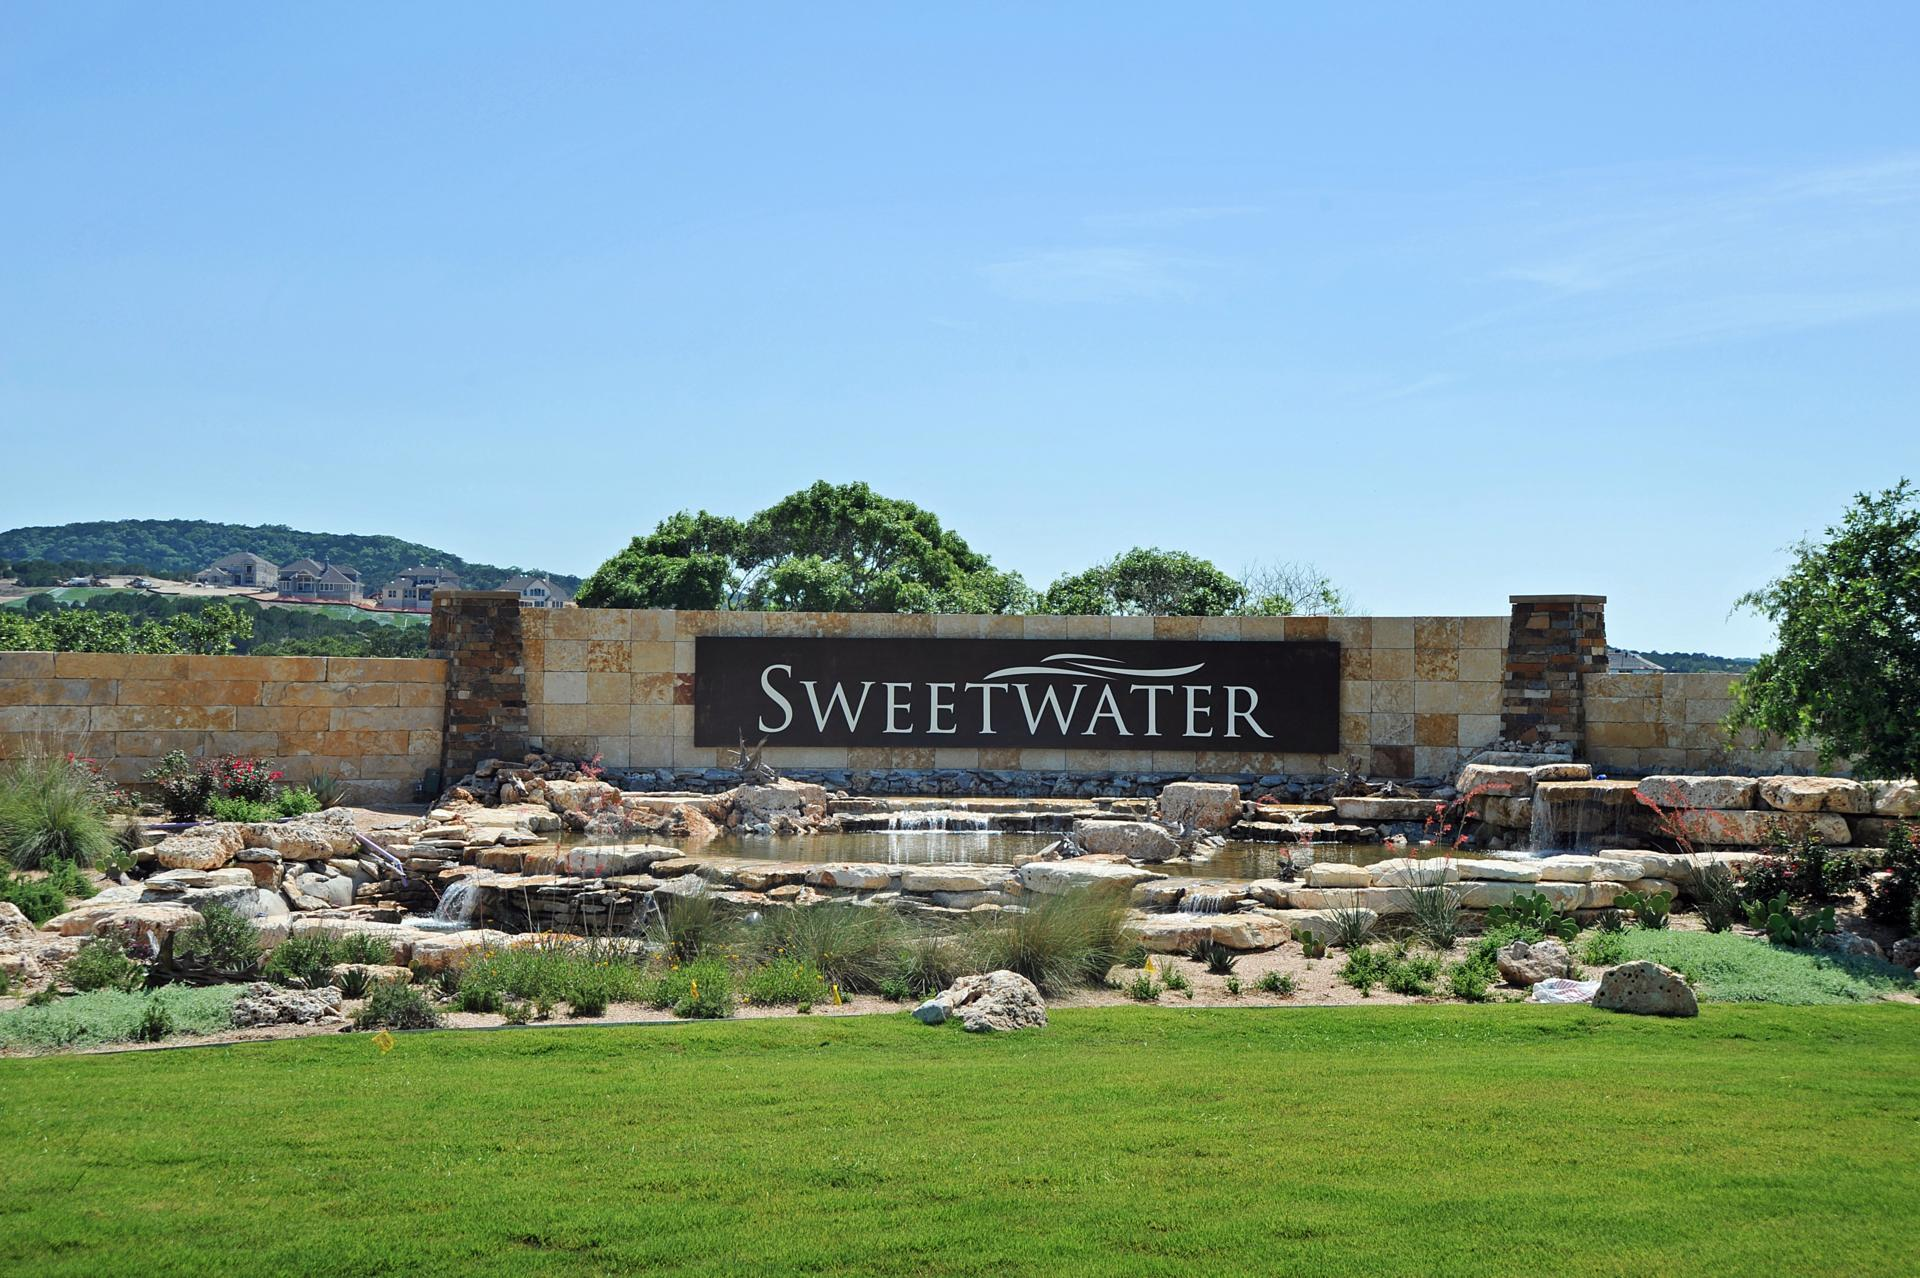 The Sweetwater Entrance